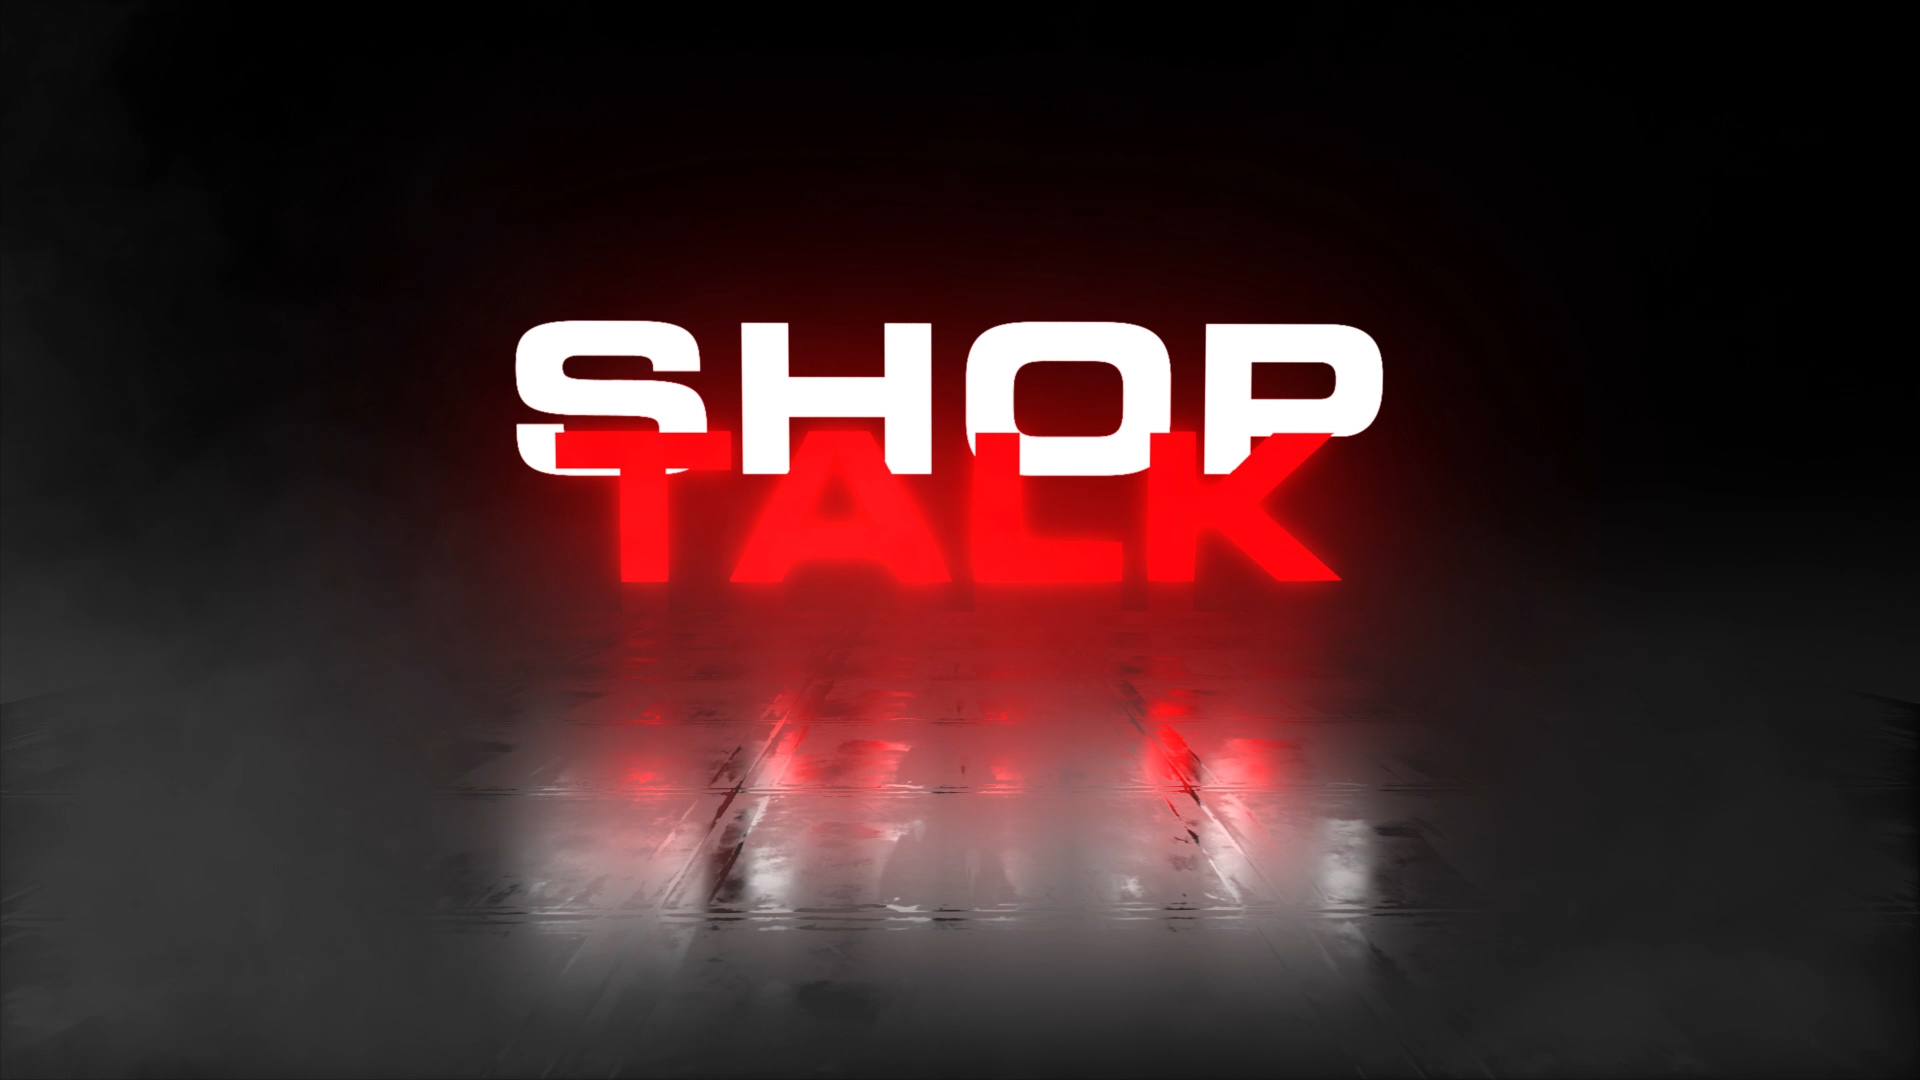 Code 3 ShopTalk Compilation